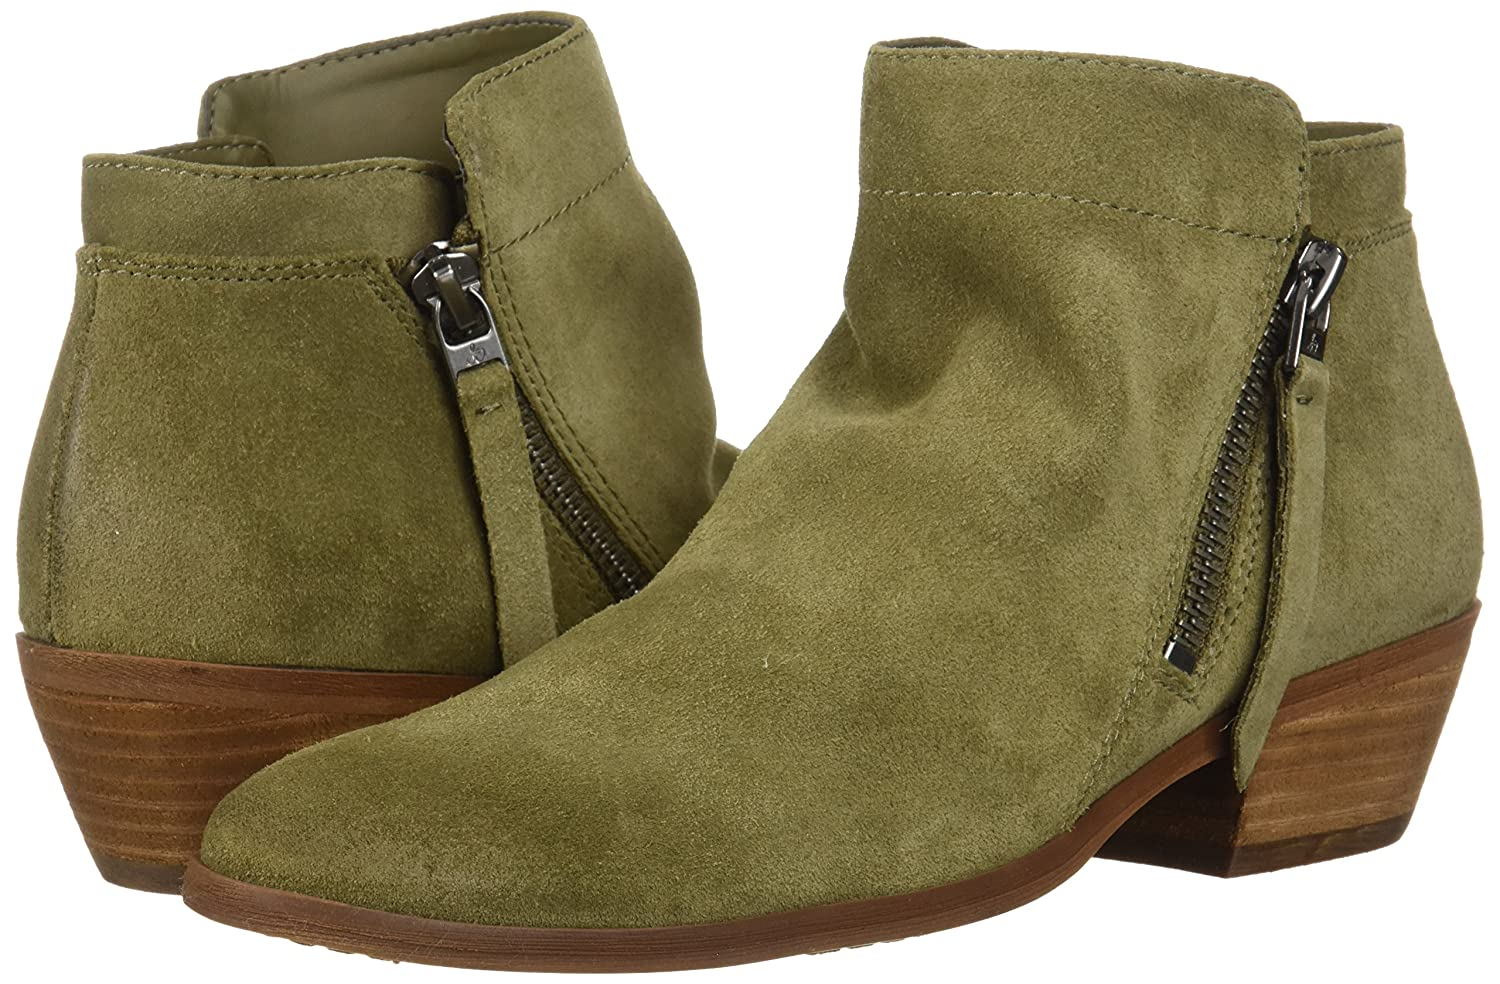 Sam Edelman Women's Packer Ankle Boot B07C9GVNFW 9 W US|Moss Green Suede